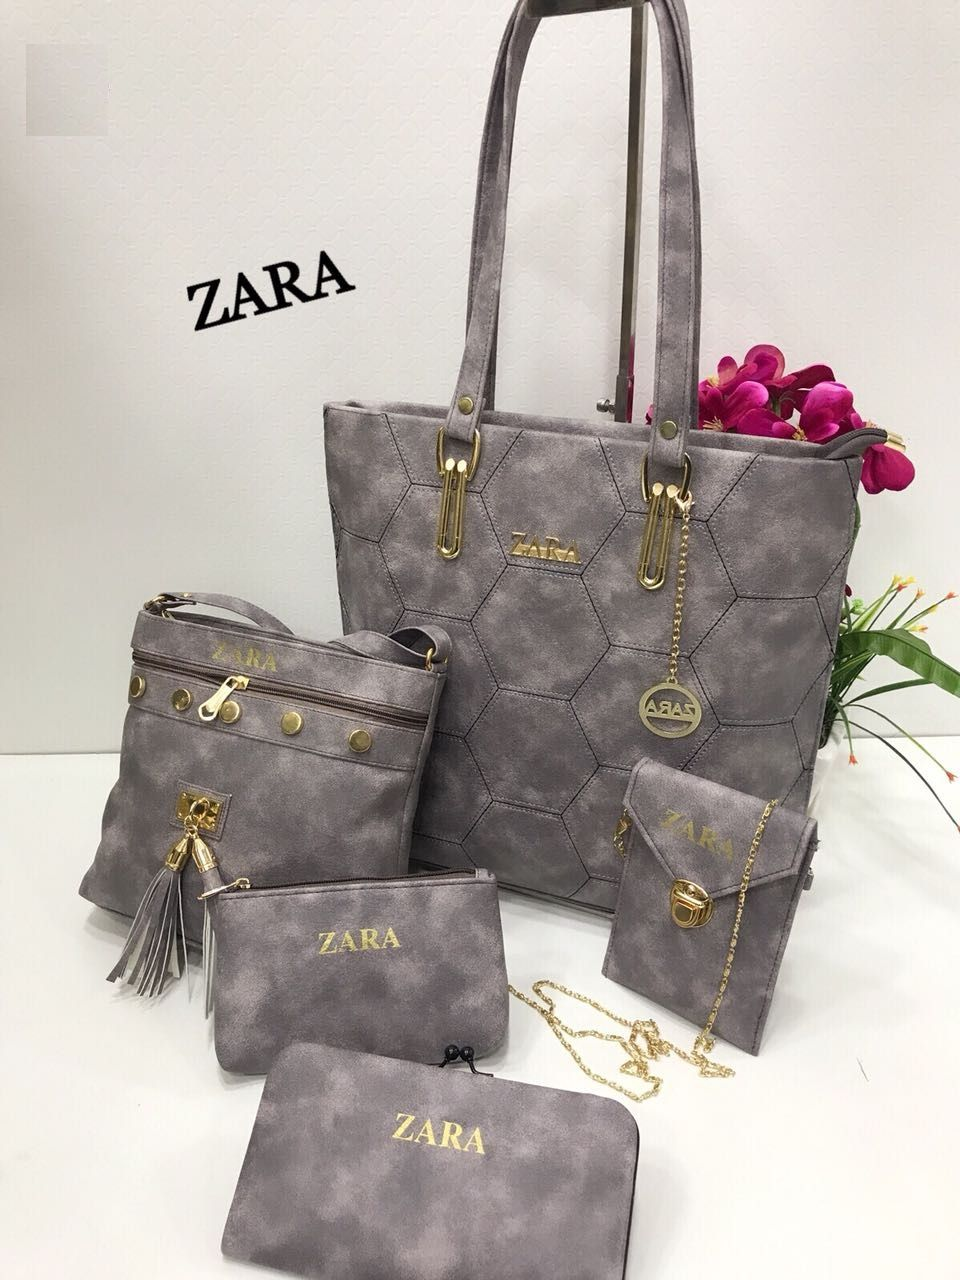 fbc1118e36ff89 ZARA Ladies Bag ComBo Zara Combo Set of 5 Size in image @1399 Free Shipping